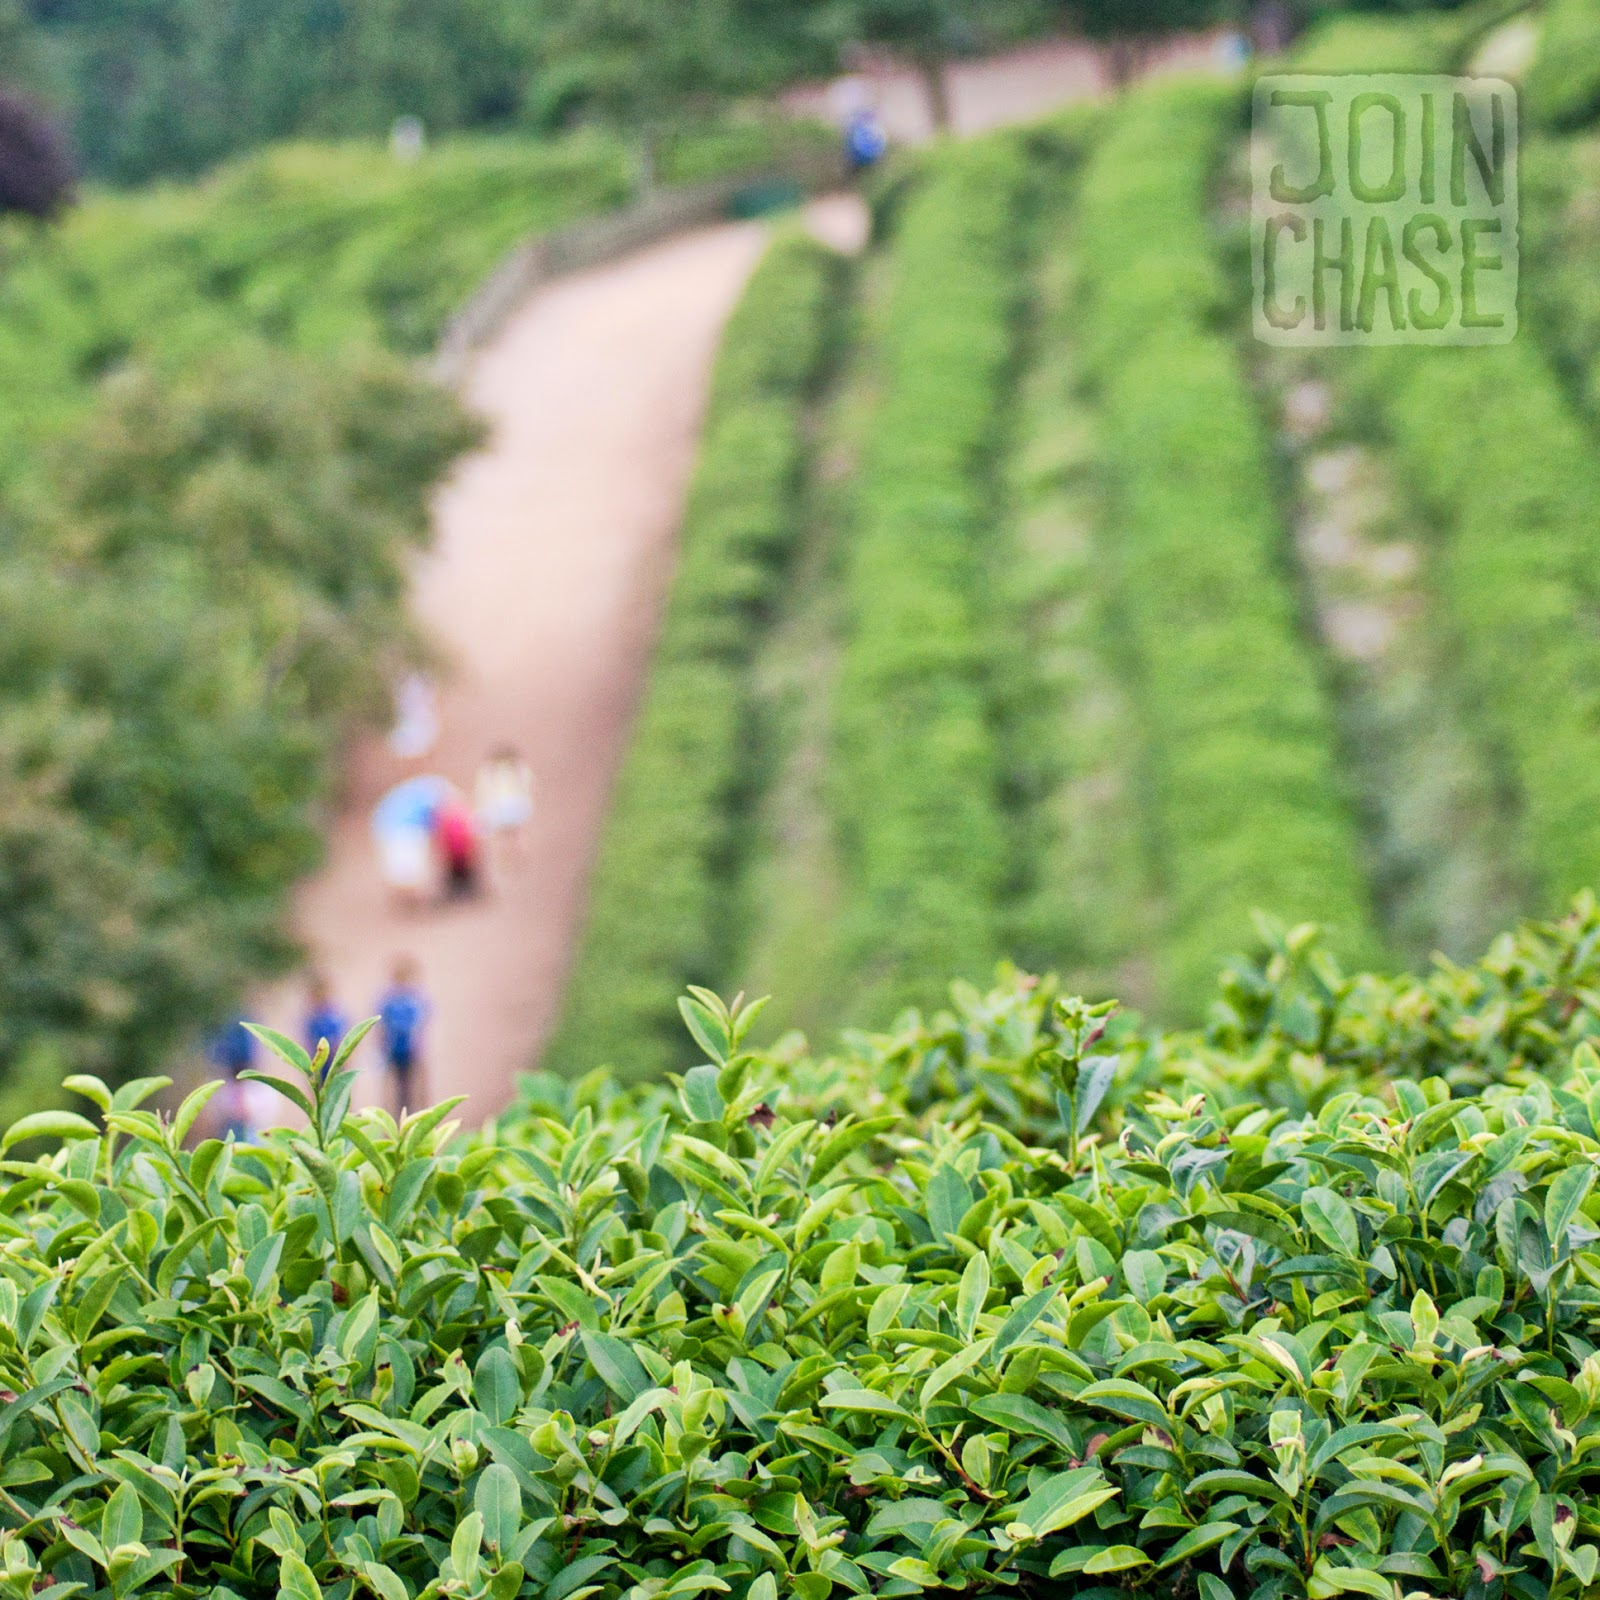 Walking around Daehan Green Tea Plantation in Boseong, South Korea.